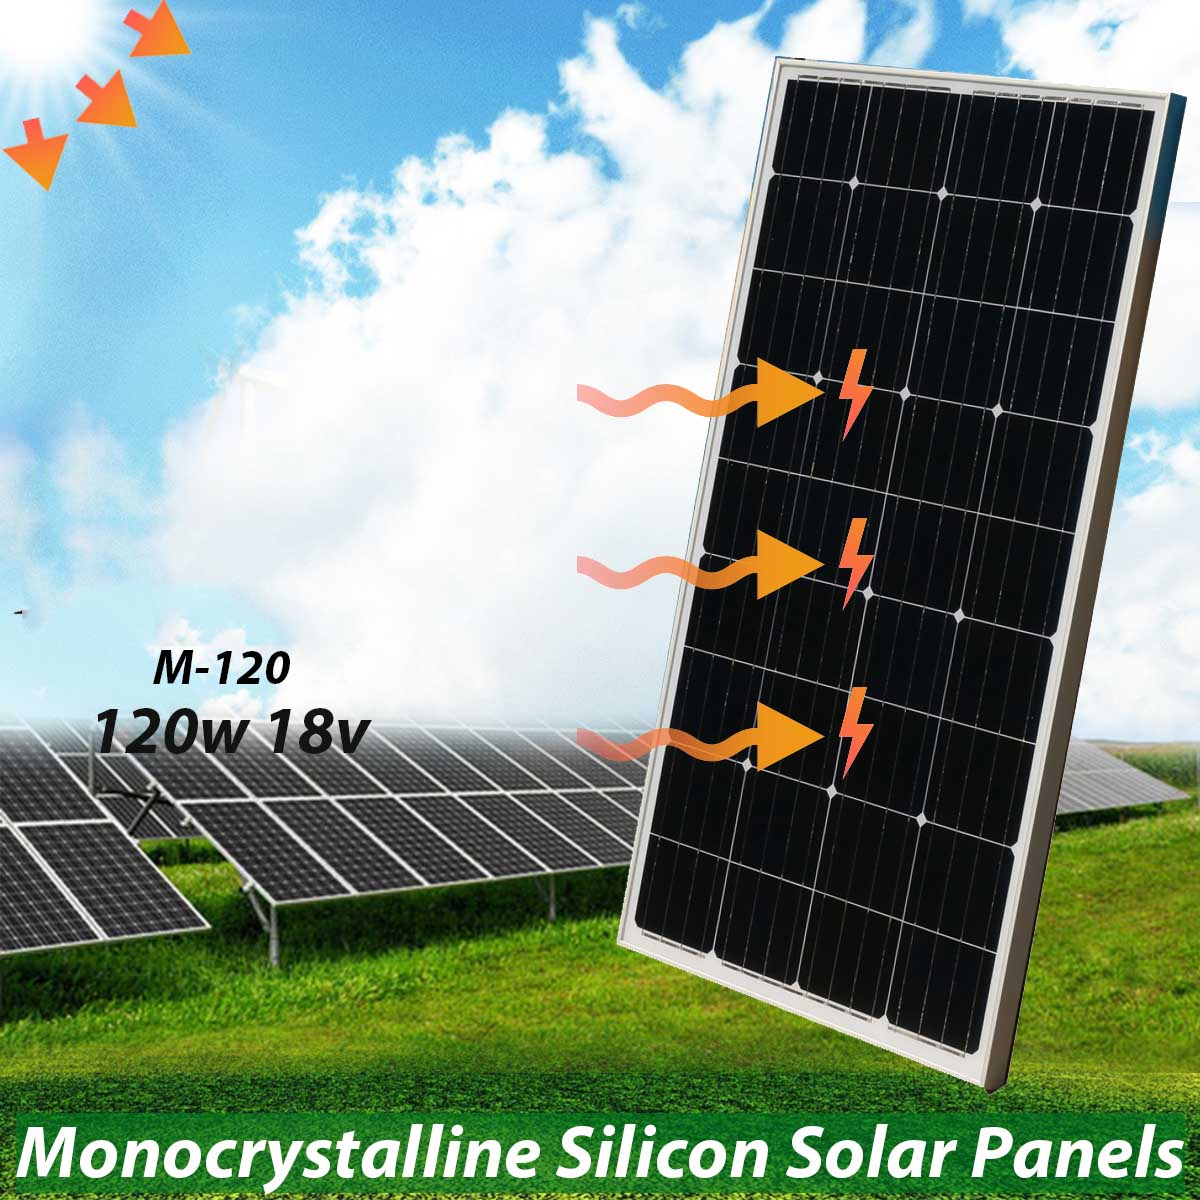 LEORY 120w 18v Monocrystalline Silicon Solar Panel With Glass Bearing Plate Monocrystalline Silicon For Solar System Supply